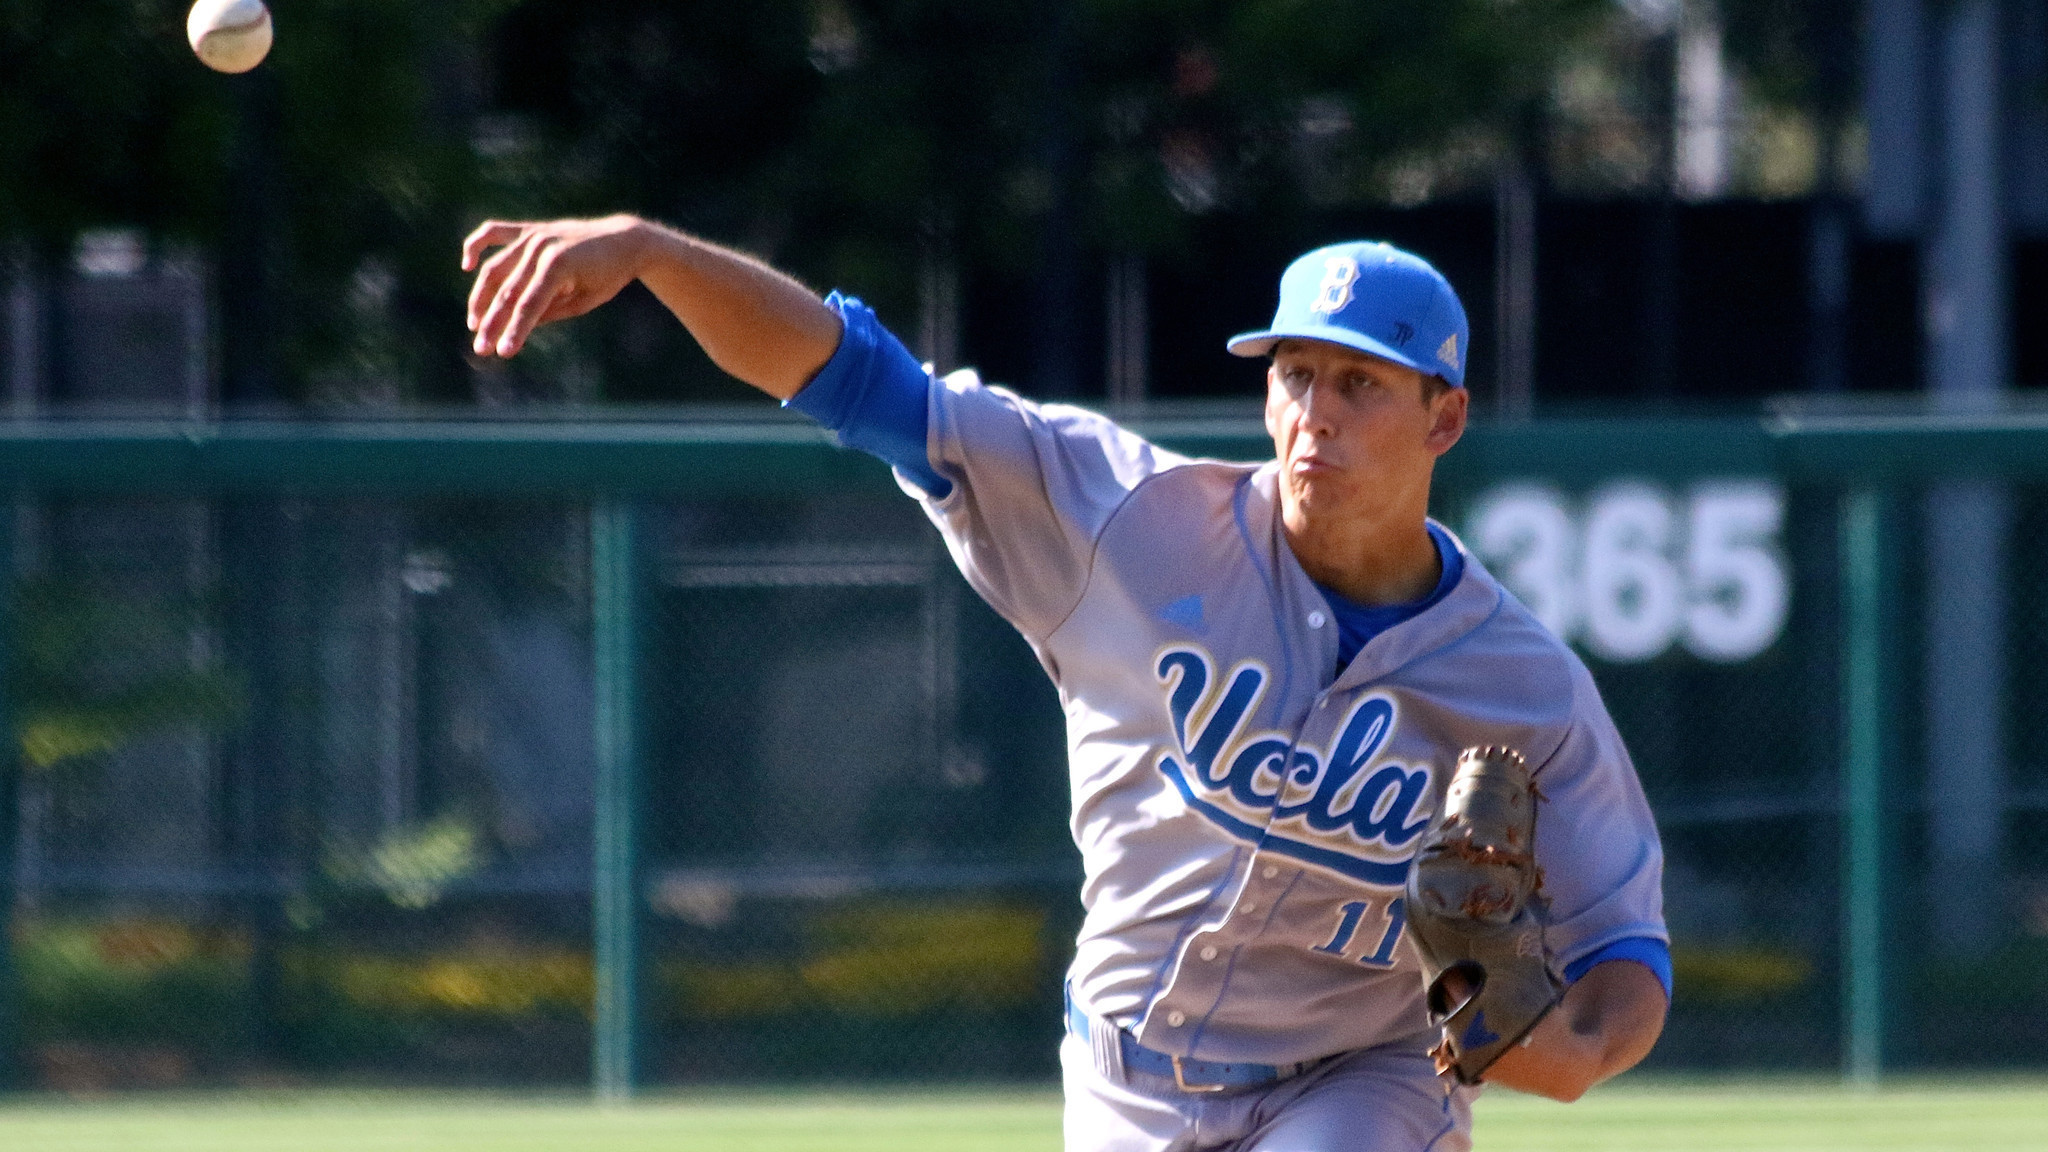 UCLA baseball goes to work to beat Cal State Bakersfield, 7-2